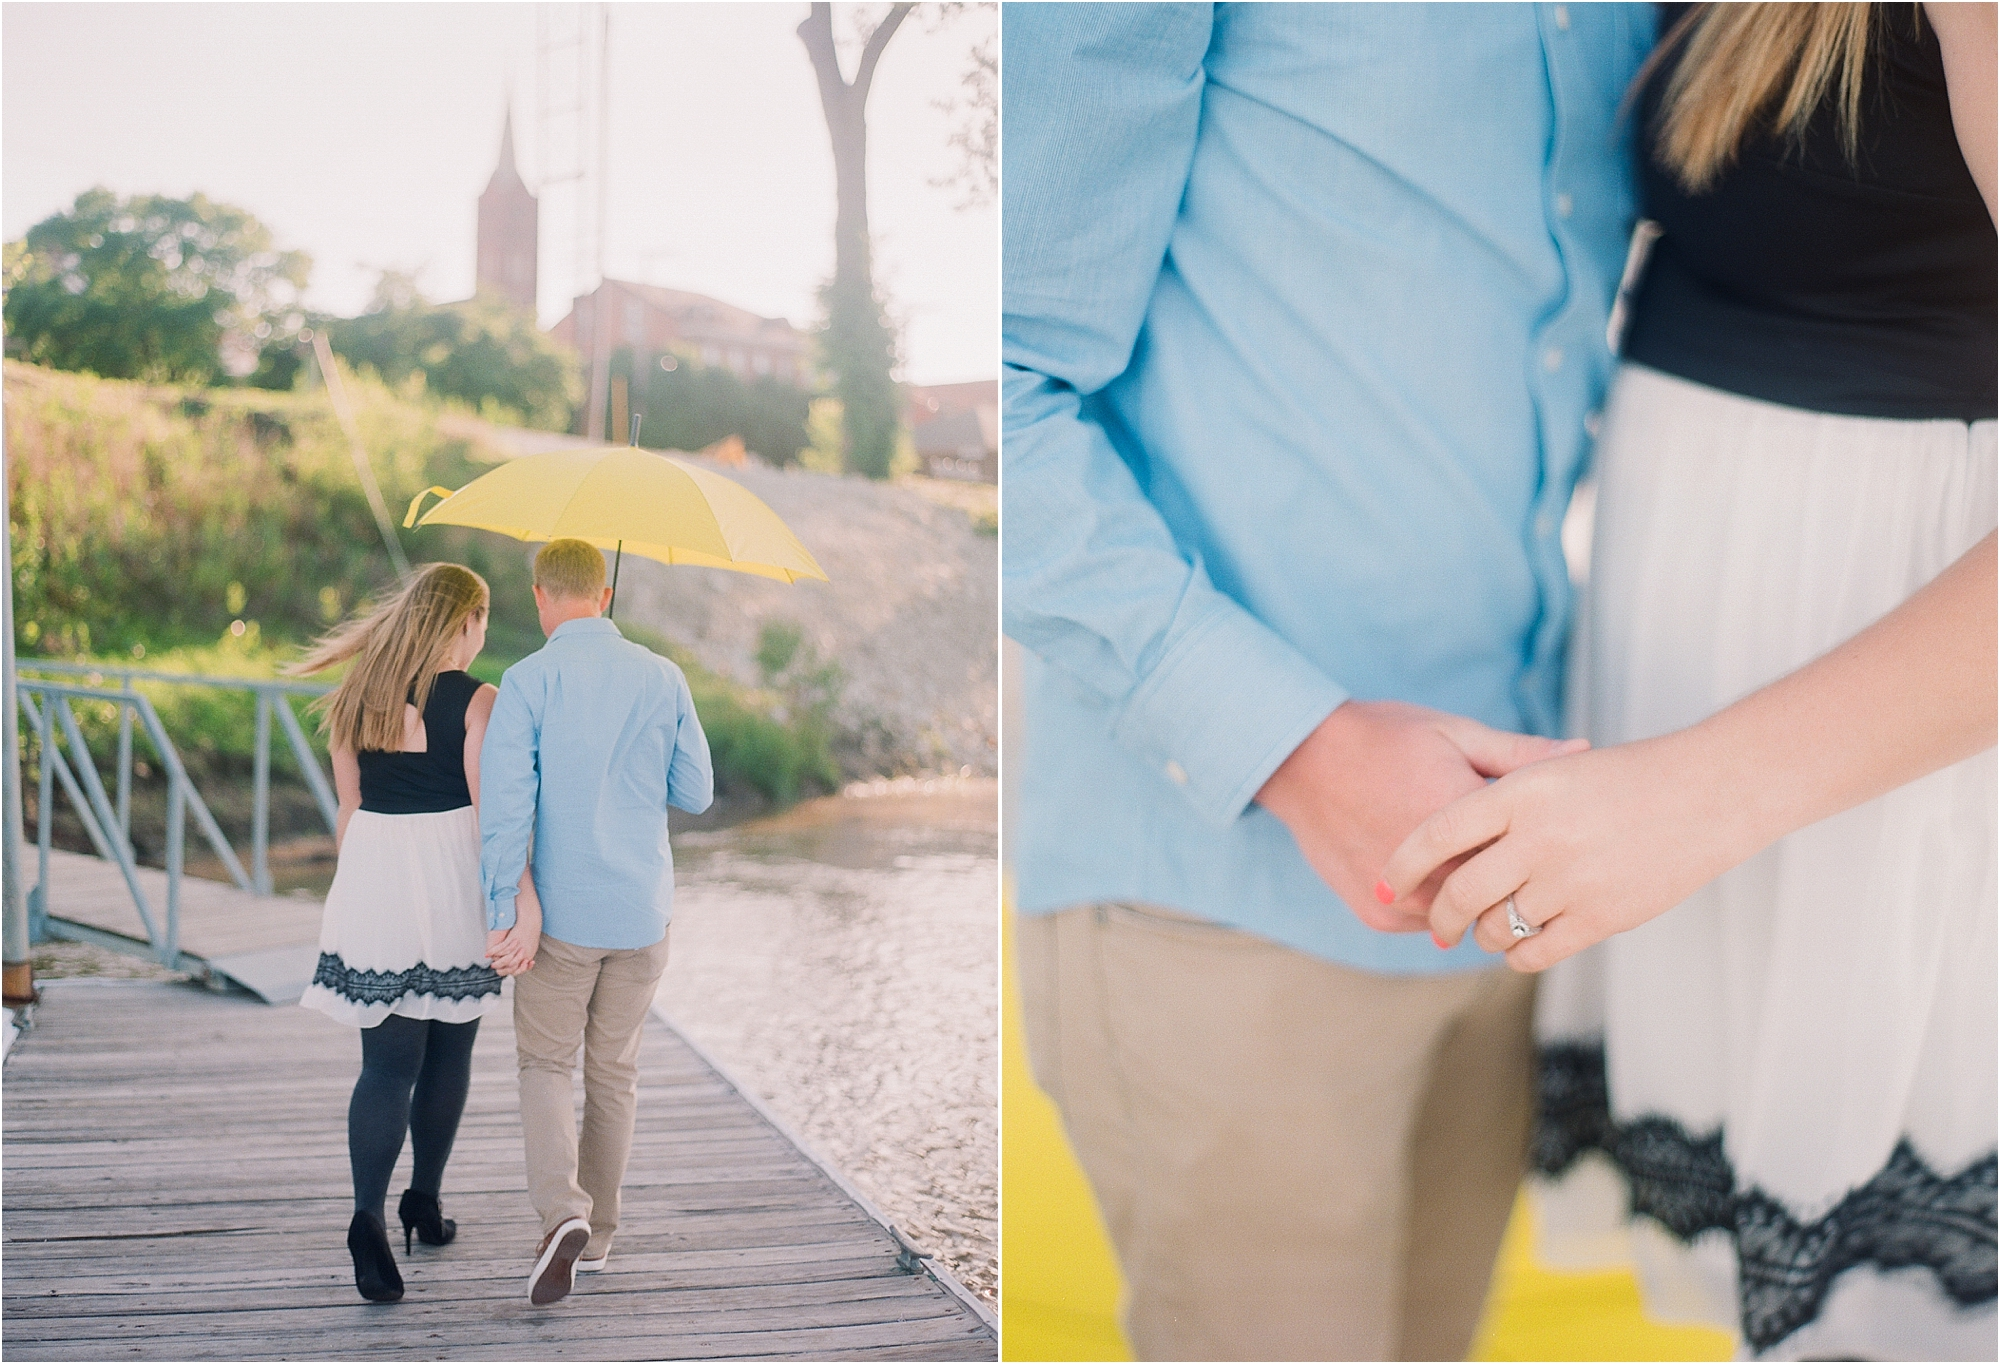 St Louis Engagement Session - The Jordan Brittley Blog